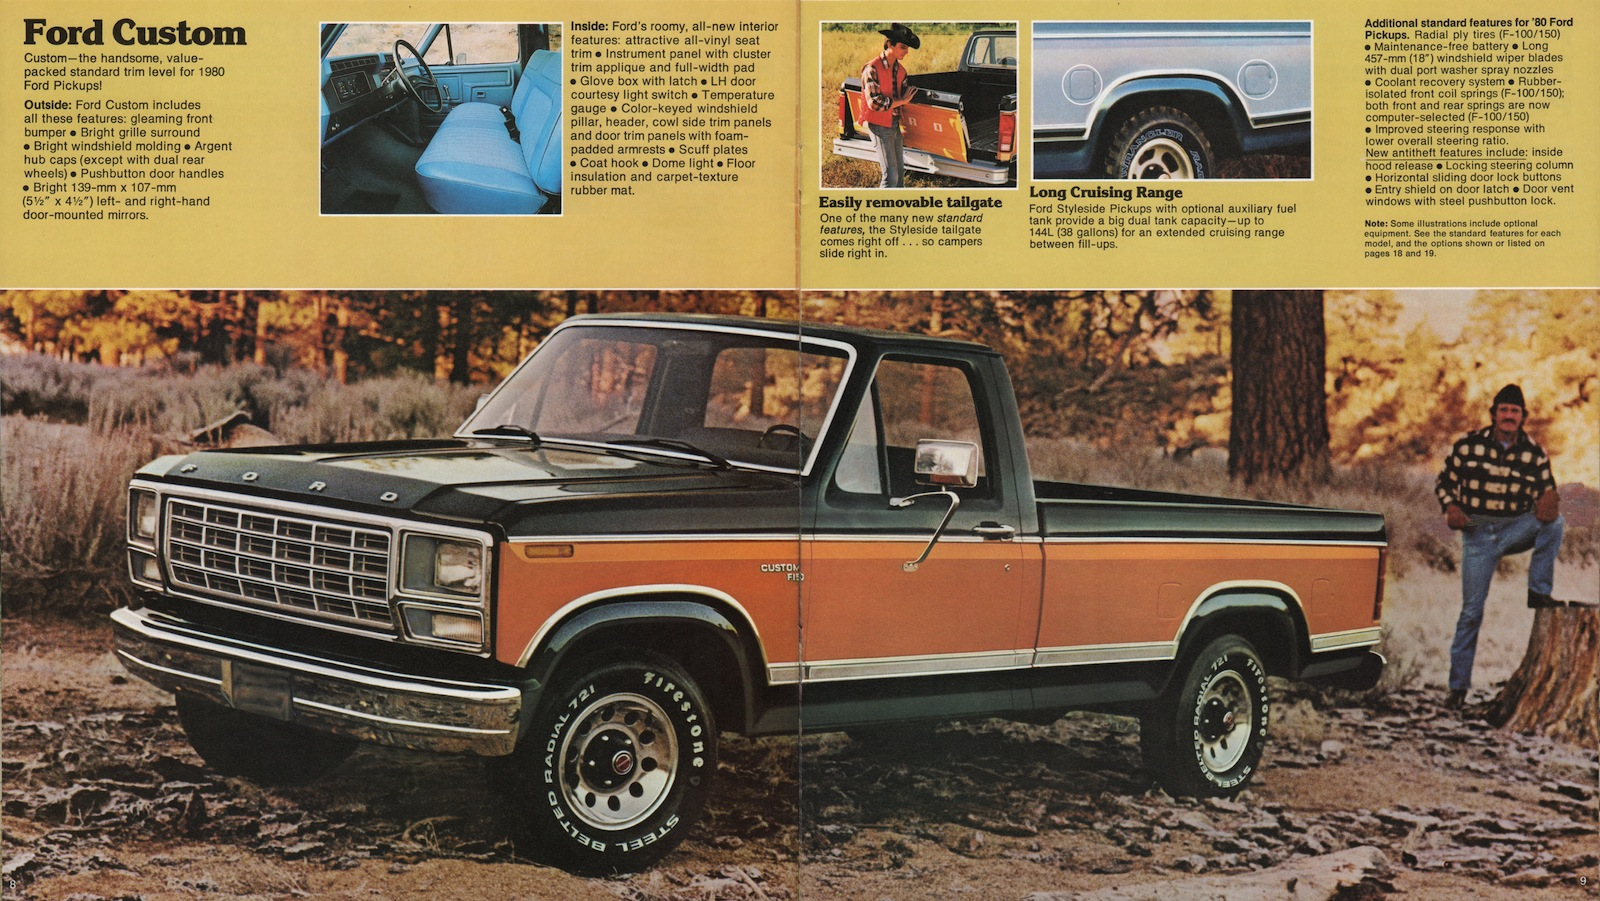 92 1980 Pickups Spoked Wheels And Tape Stripes Continued To Dress Dodge Truck Brochure Brochures Are Presented For Research Use Only Company Marks Emblems Designs Trademarks Or Service Of